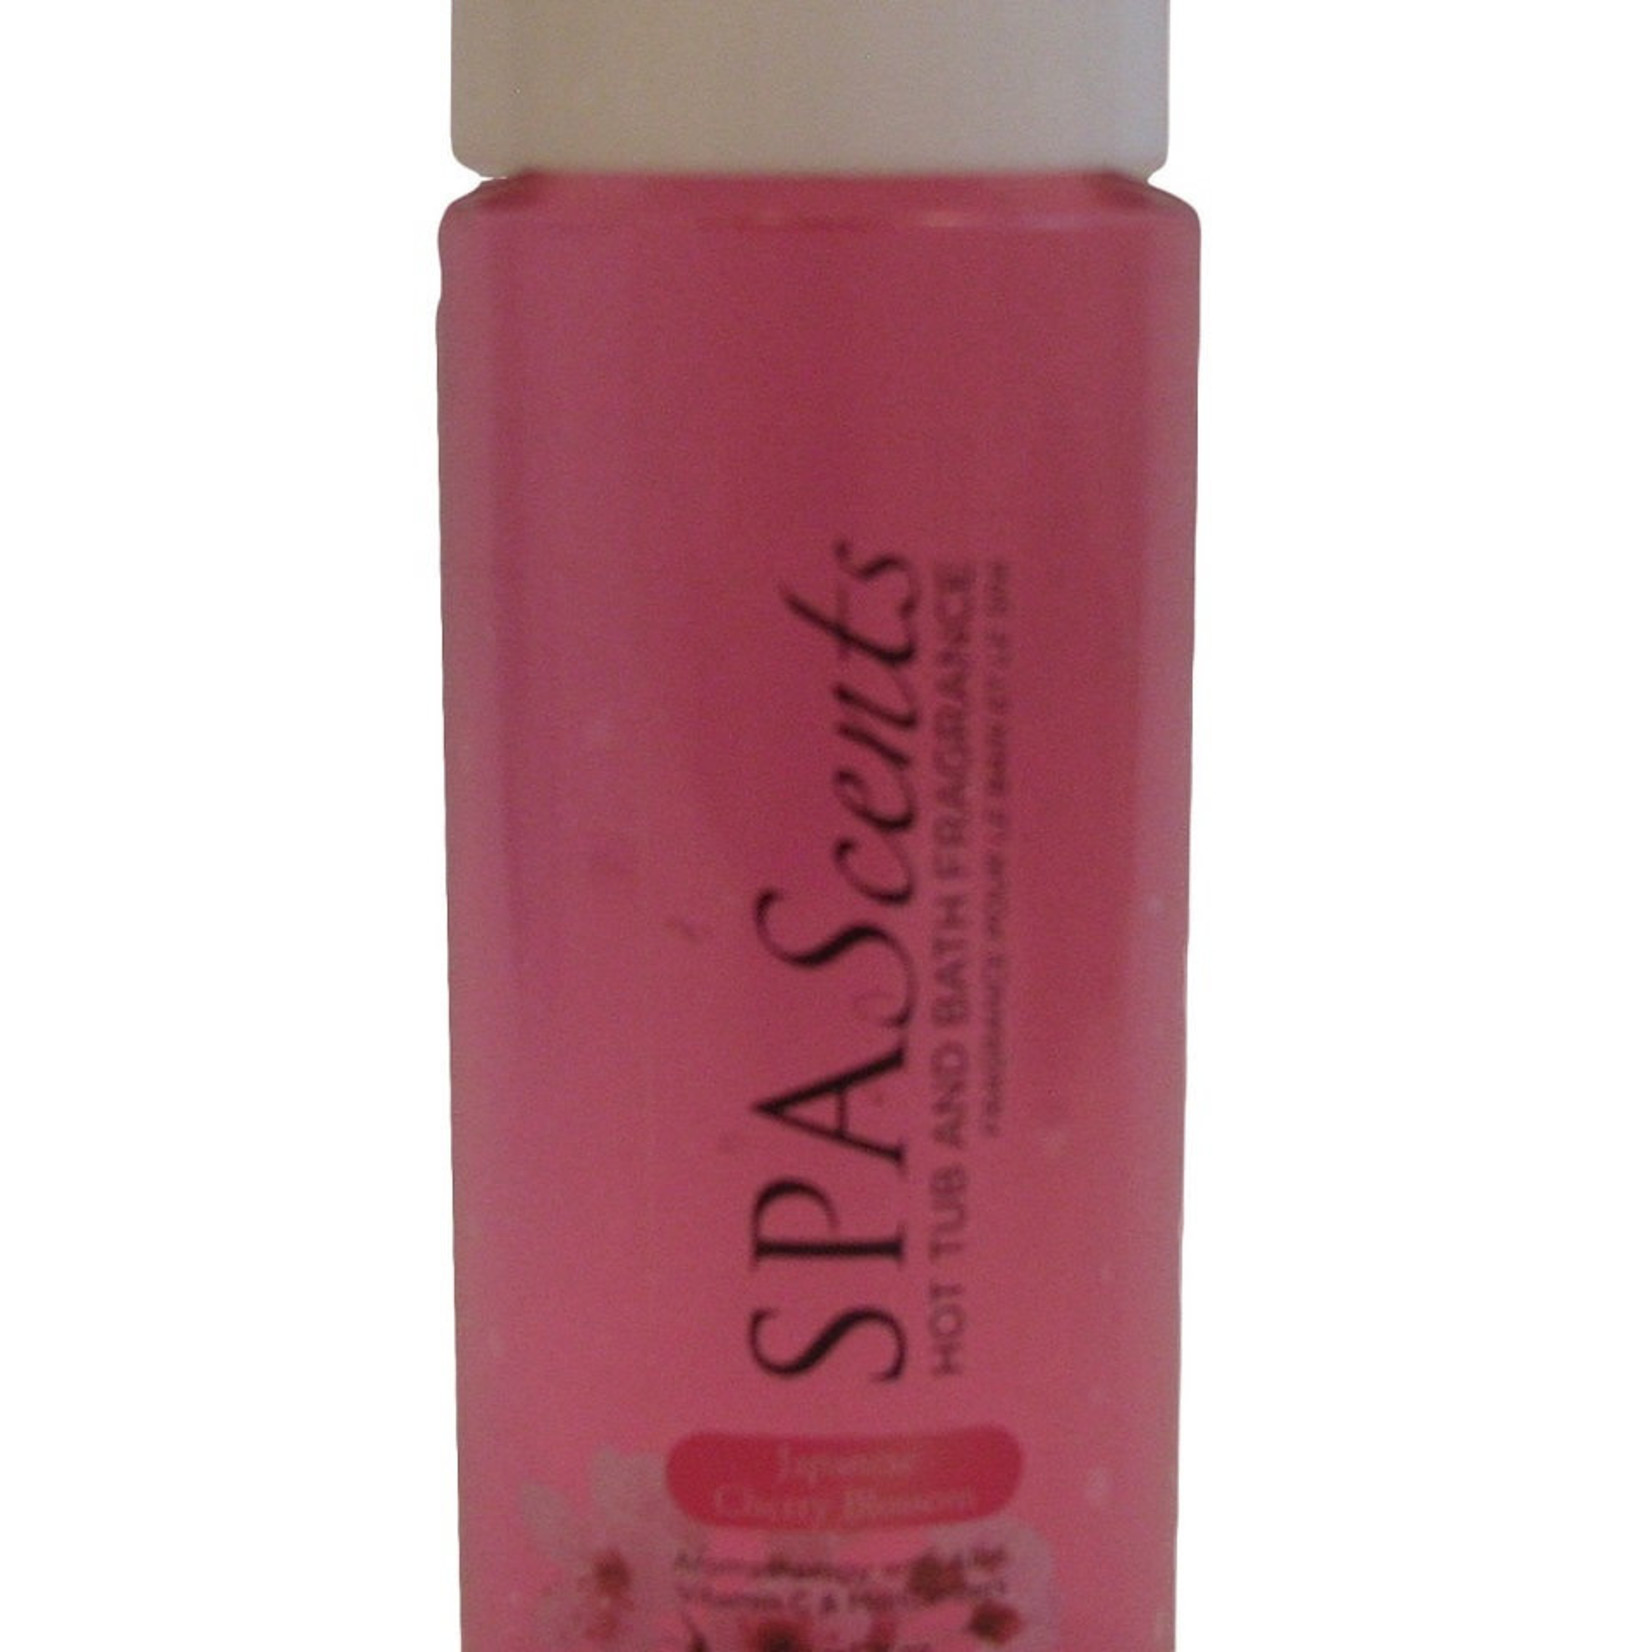 Spa Scents SPA SCENTS JAPANESE CHERRY BLOSSOM 8oz